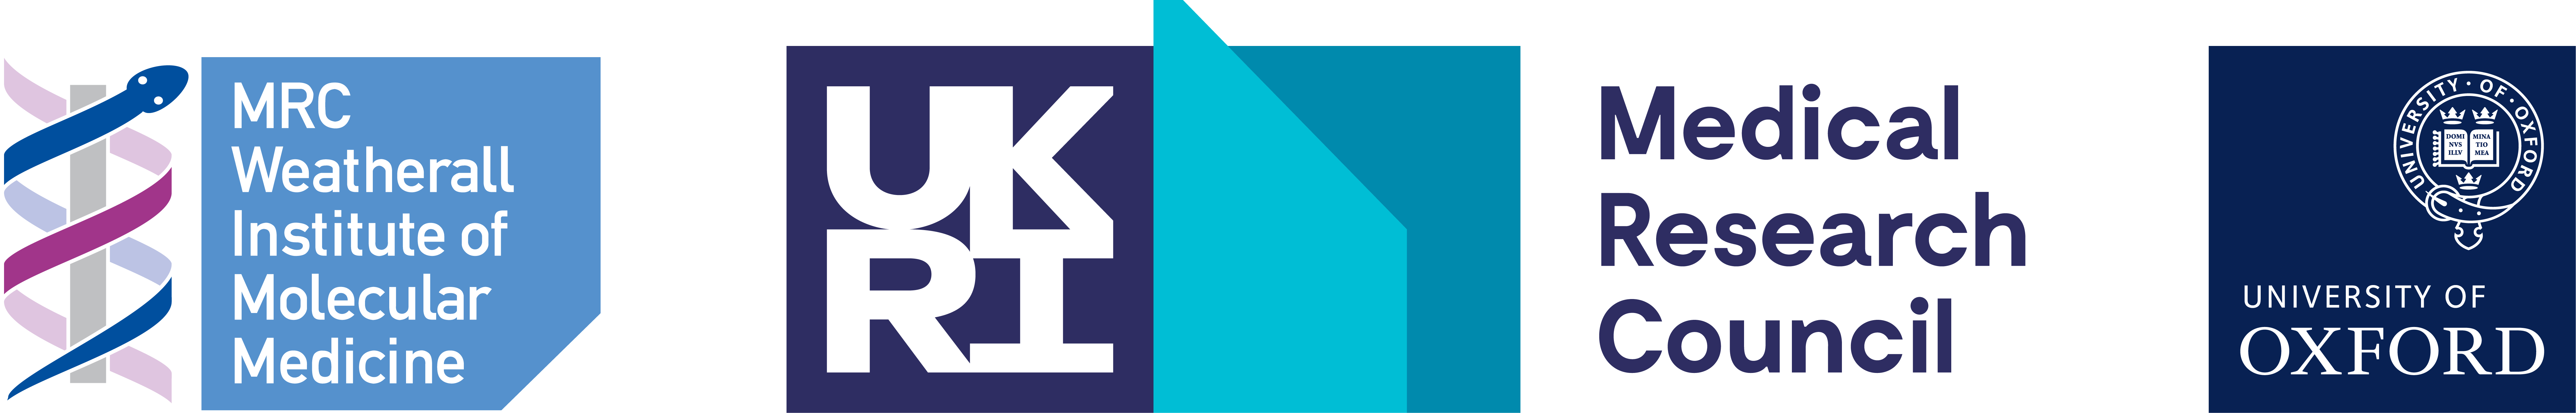 MRC Weatherall Institute of Molecular Medicine